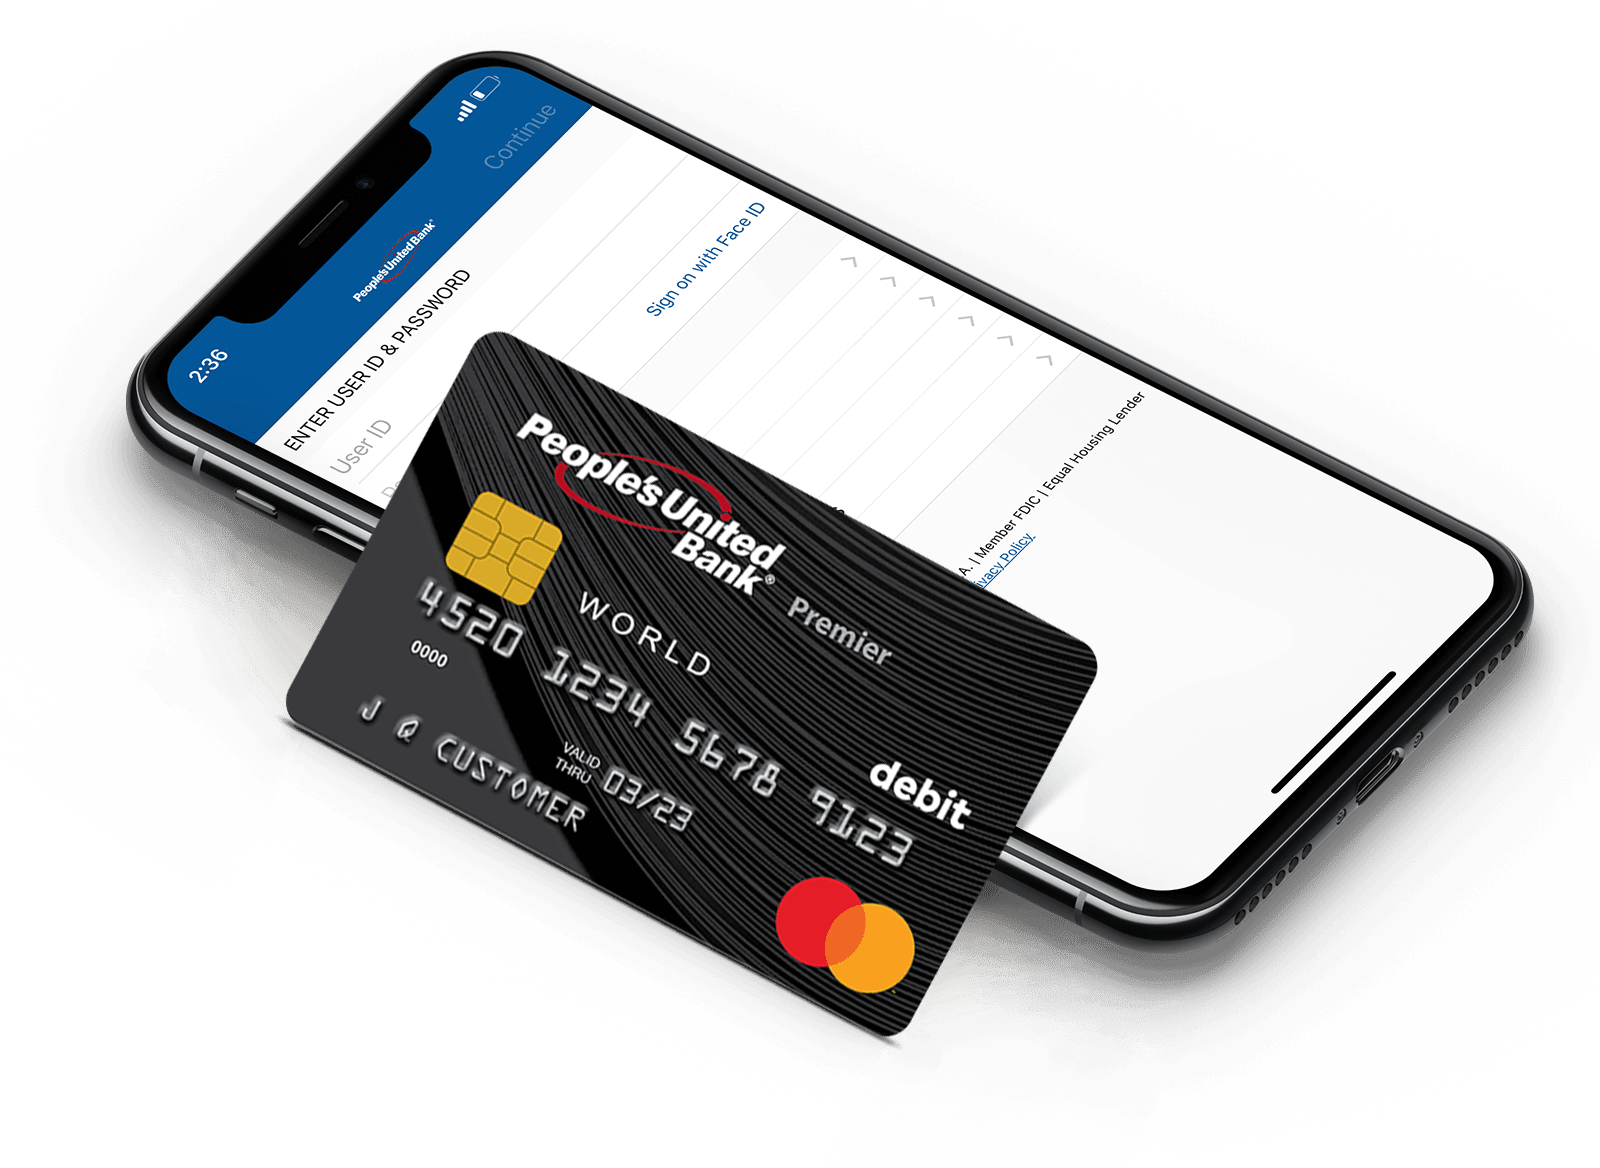 d Bank World Premier Mastercard® Debit Card leaning on a mobile phone